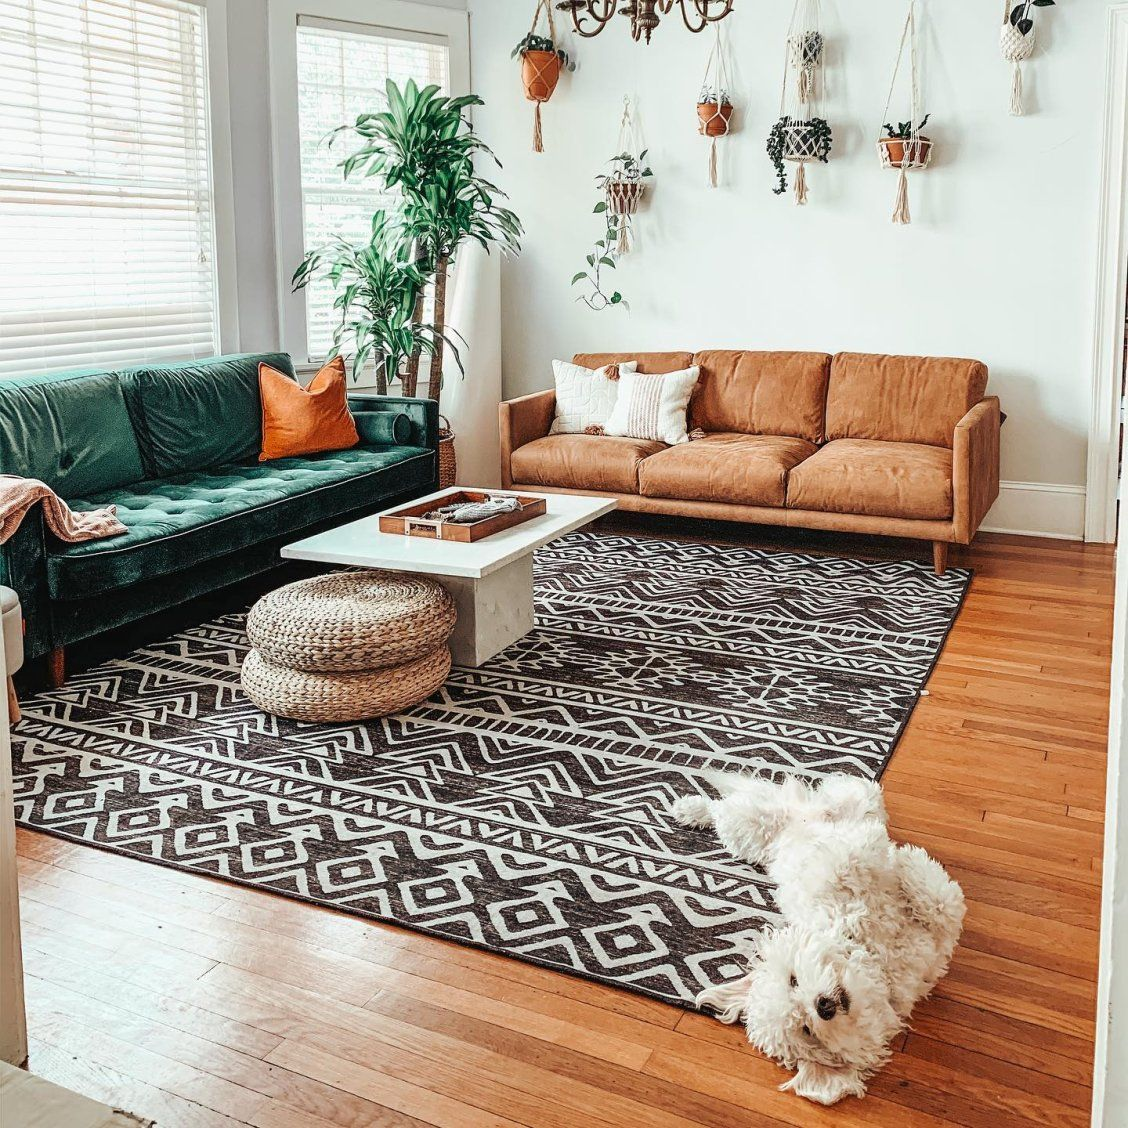 Our New Leather Couch Finally Came In And Waffle Is Pulling All The Tricks To Get Some Attention Black Rug Living Room Rugs In Living Room Boho Living Room Living room accent rugs